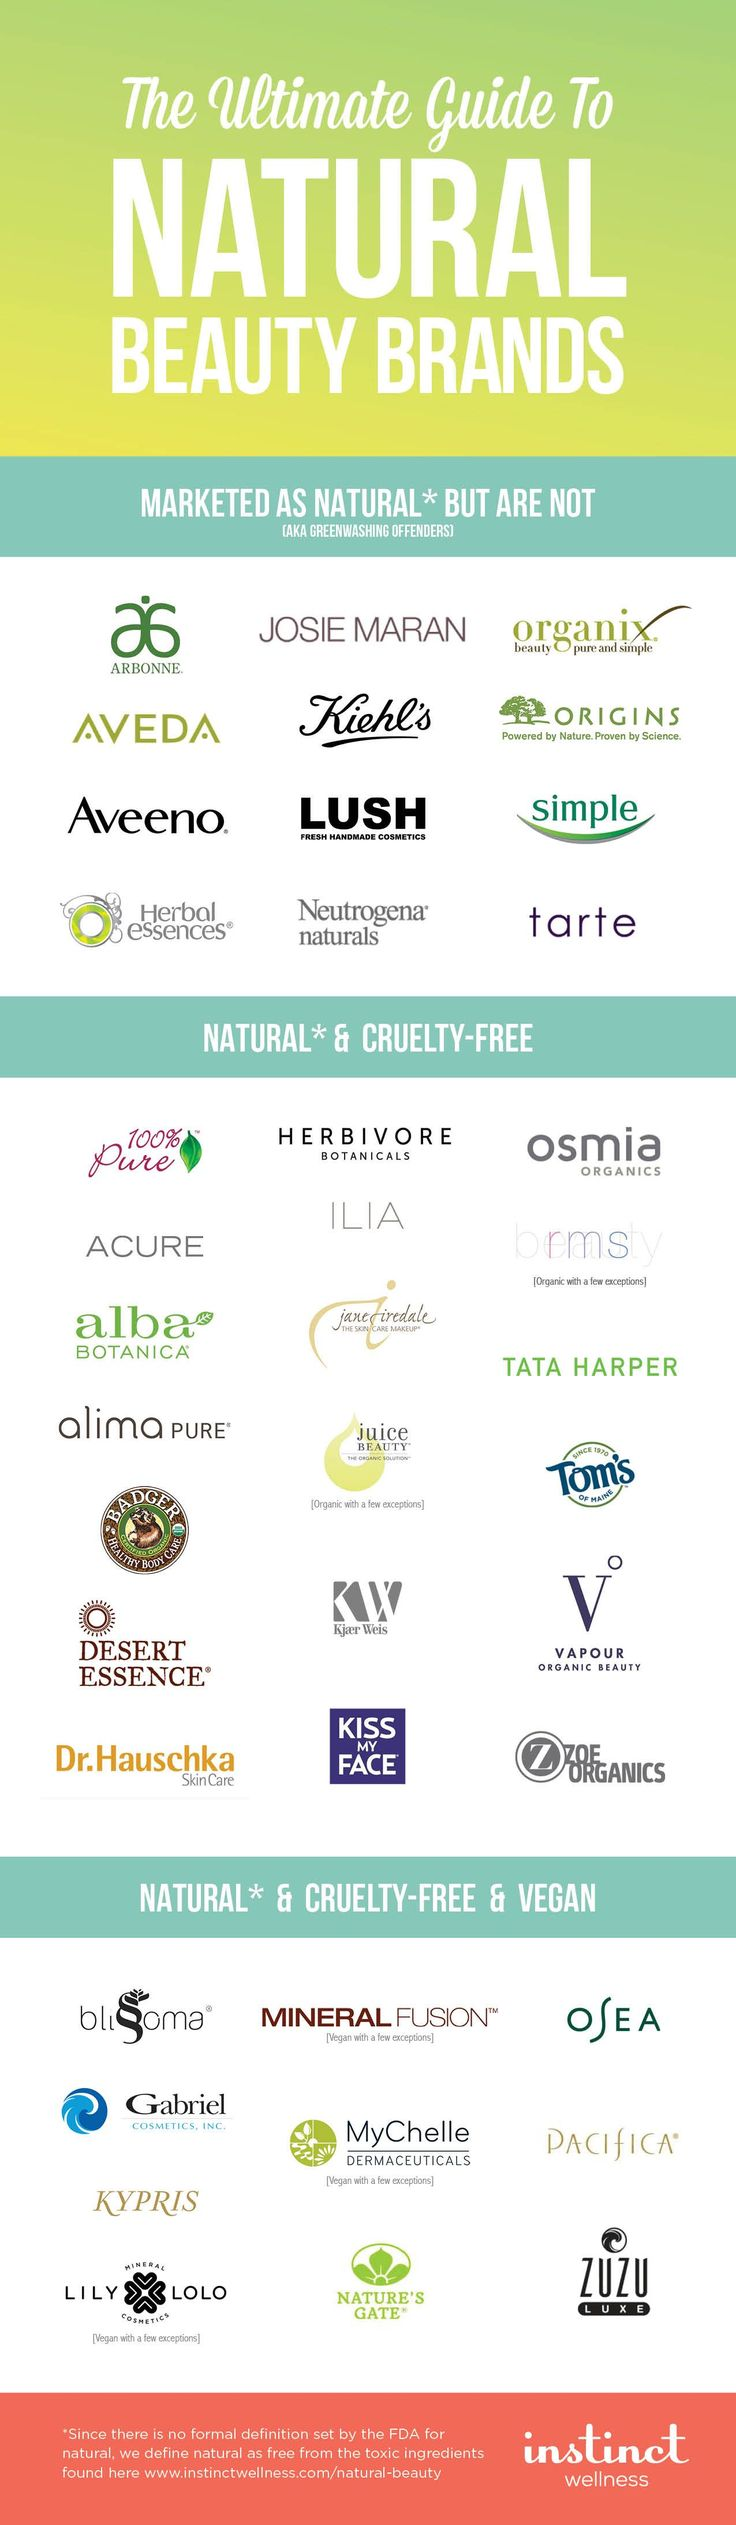 The Ultimate Guide to the Natural, Organic and Vegan Beauty Brands | Discover Non-Toxic, Chemical-Free Makeup & Skincare | www.instinctwellness.com